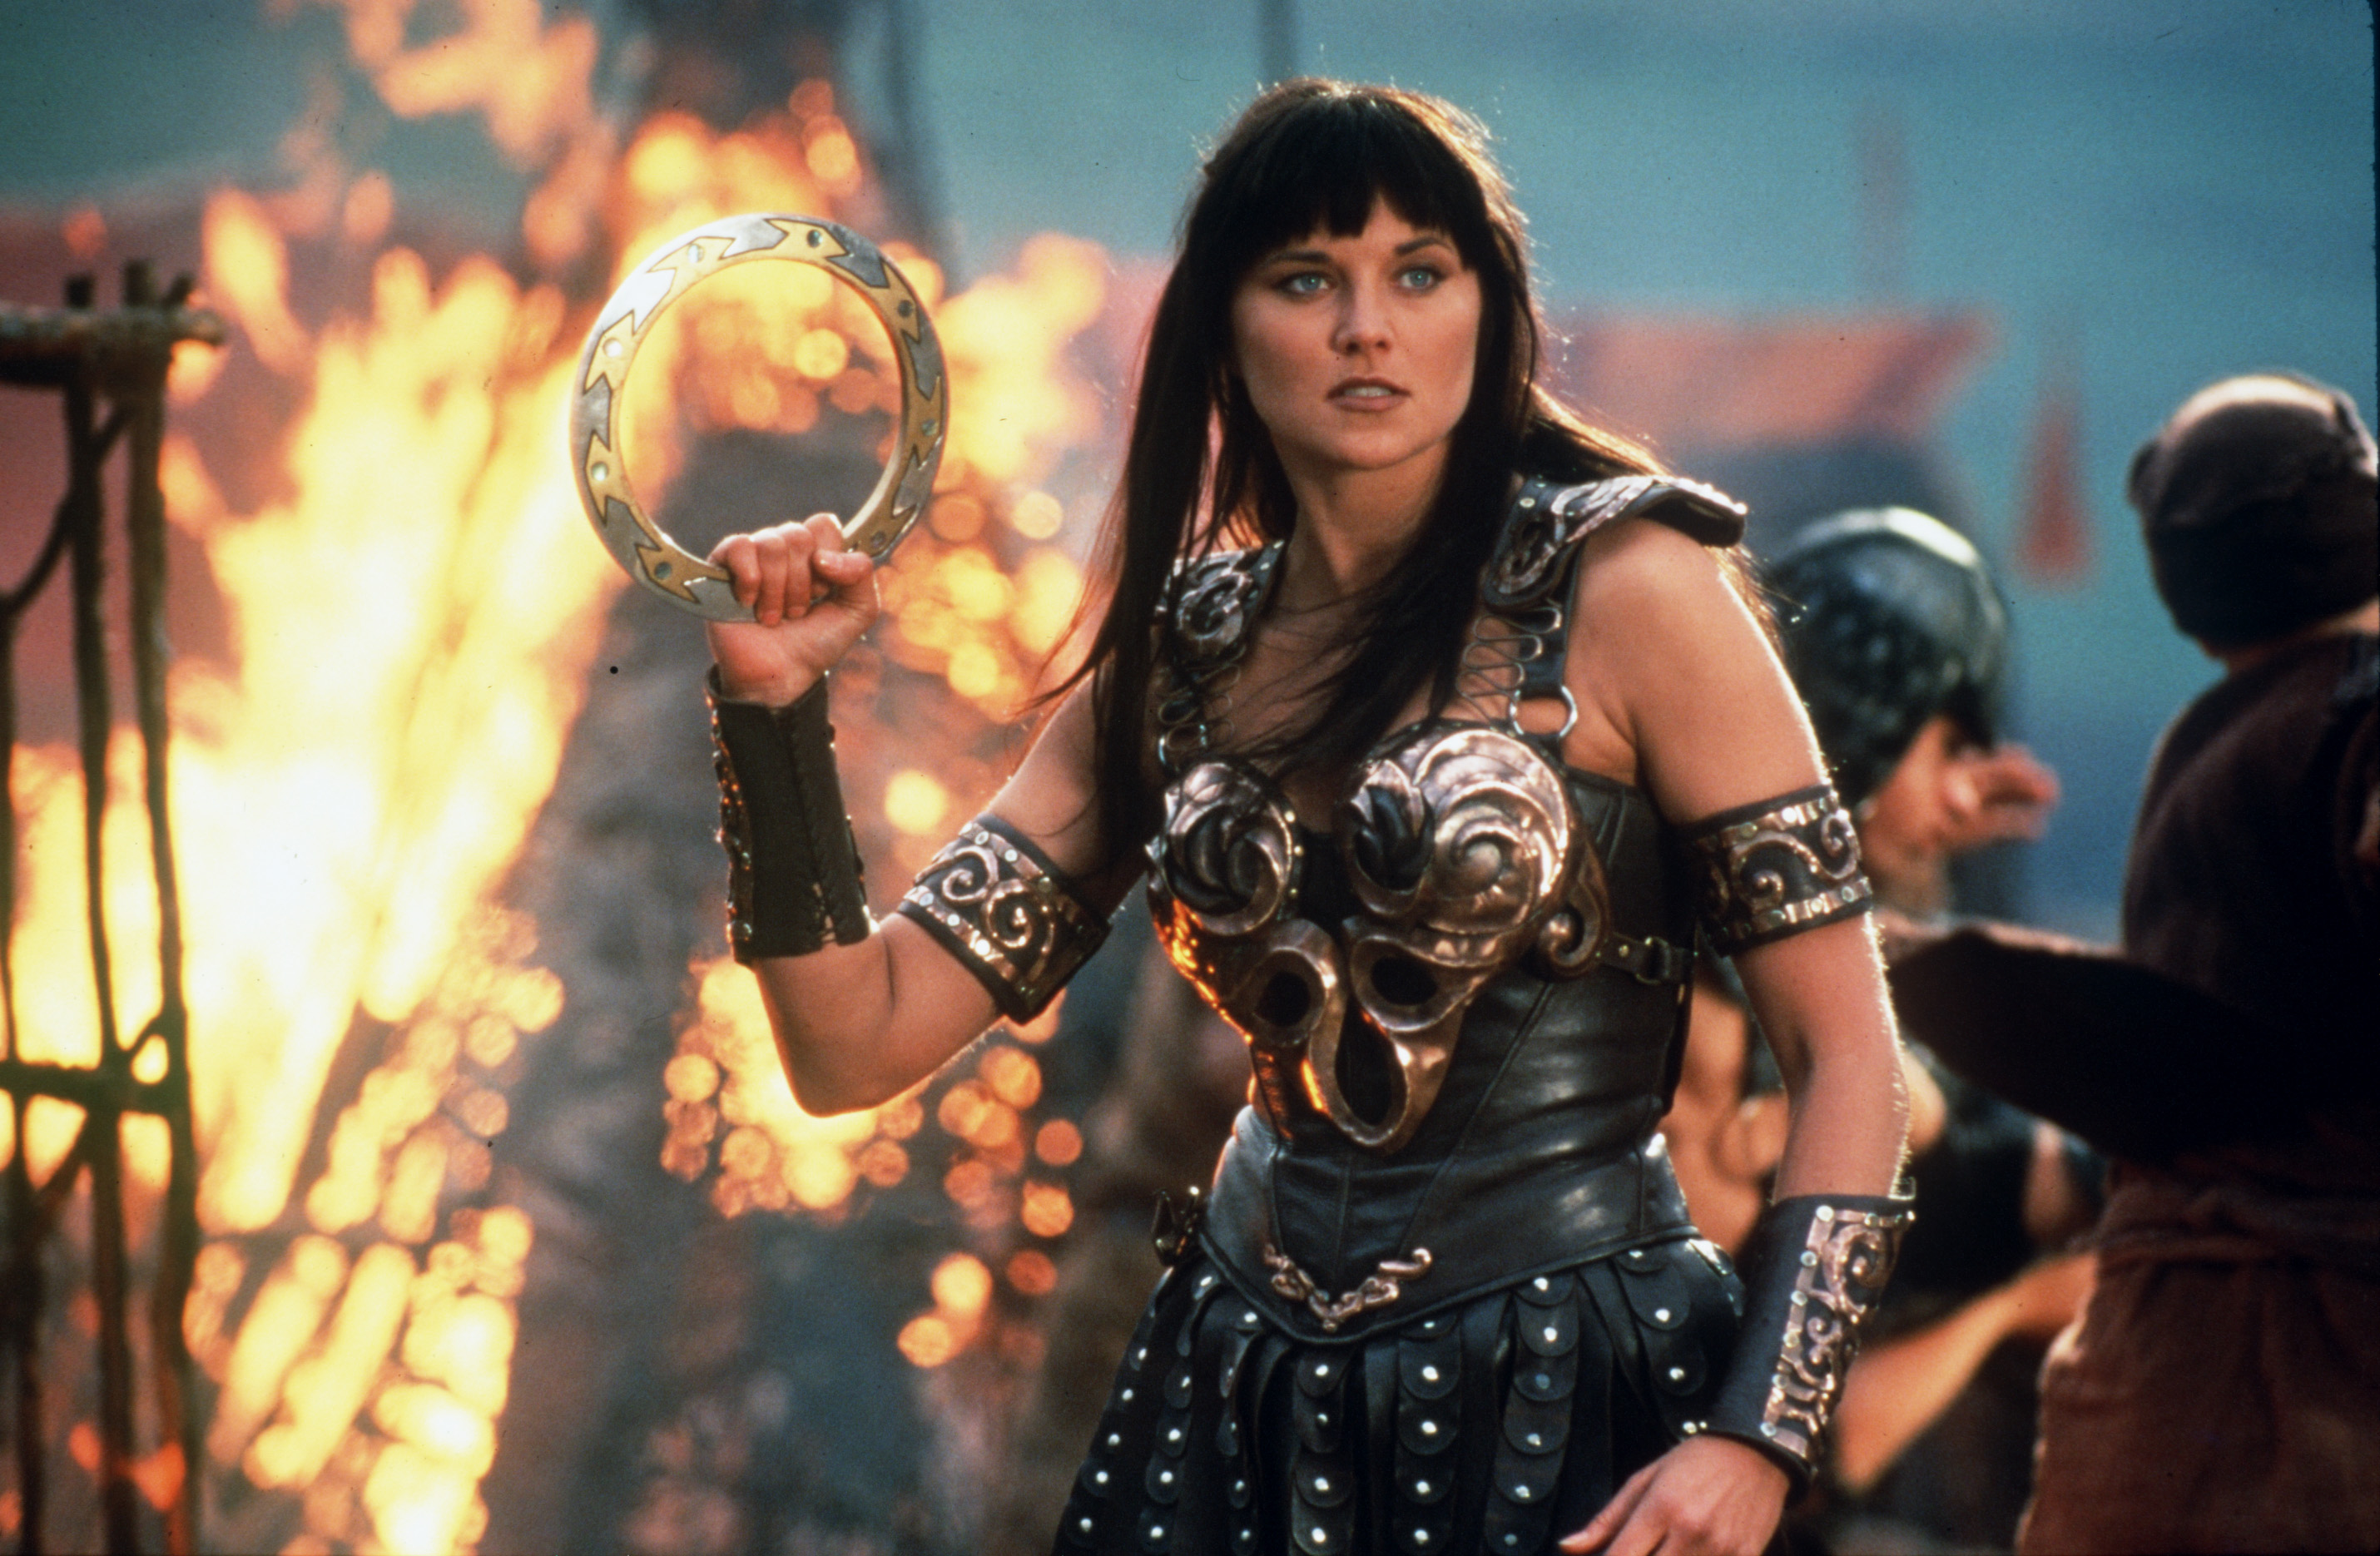 Lucy Lawless joins the cast of Agents of SHIELD - Xena Warrior Princess